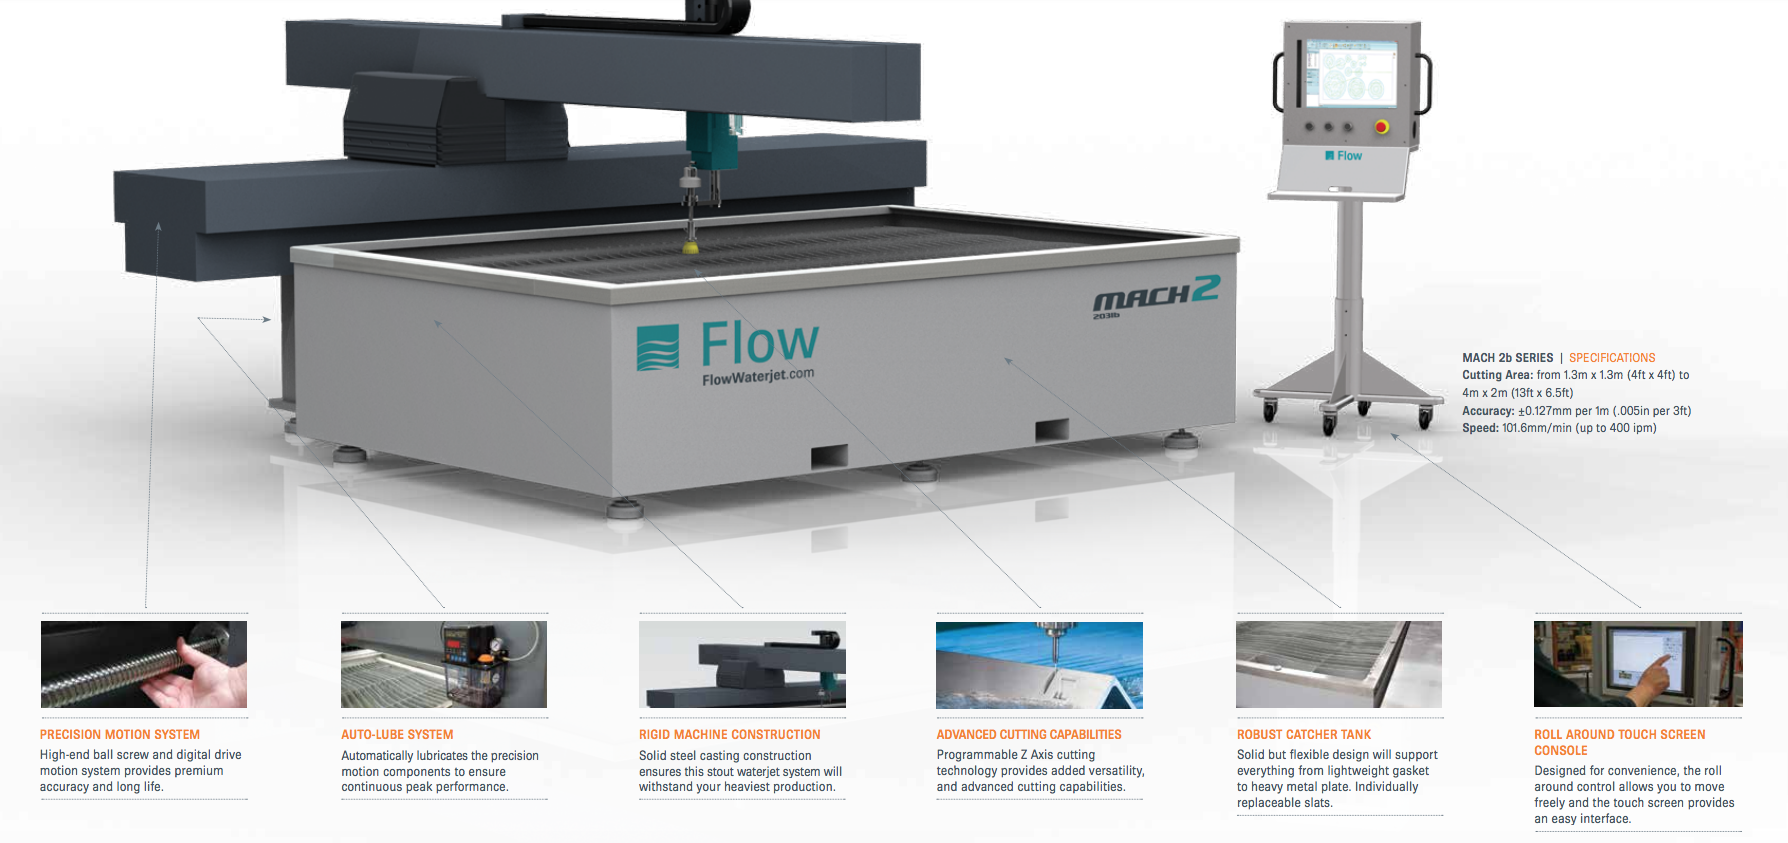 Precision Waterjet Cutting for Aluminum, Plastic, Foam, and More